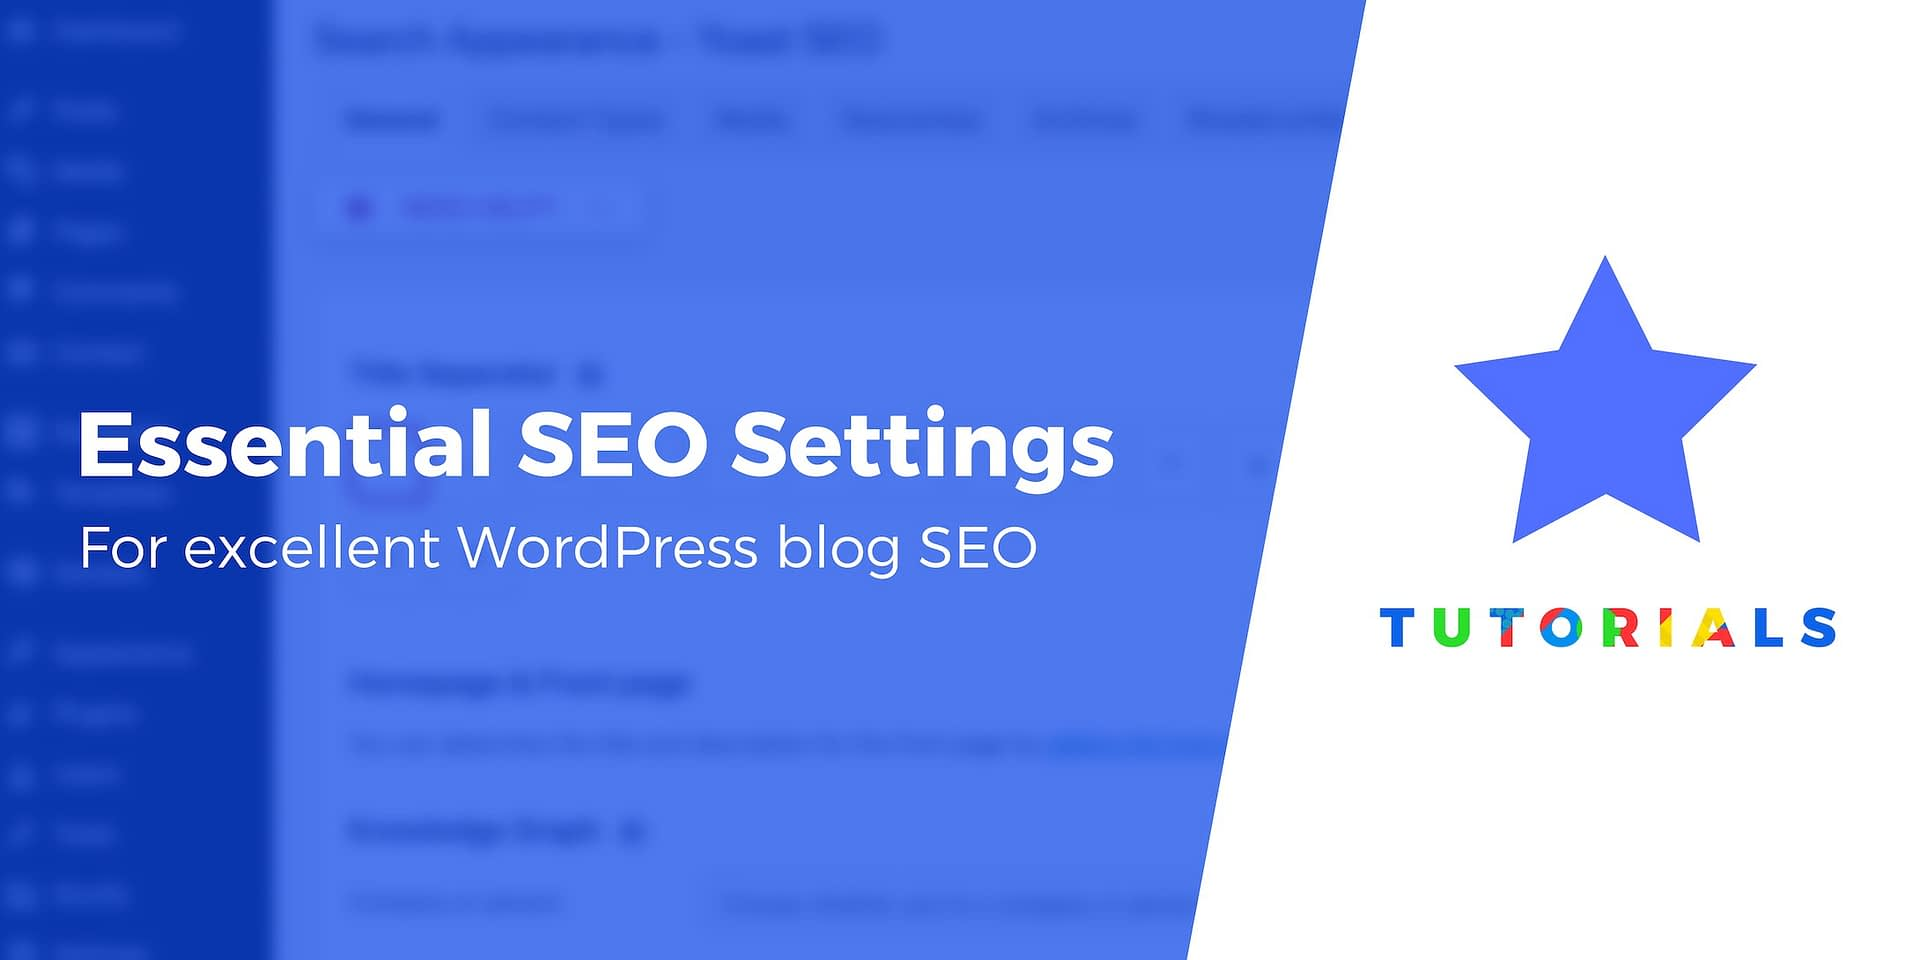 10+ Essential SEO Settings for New WordPress Blogs